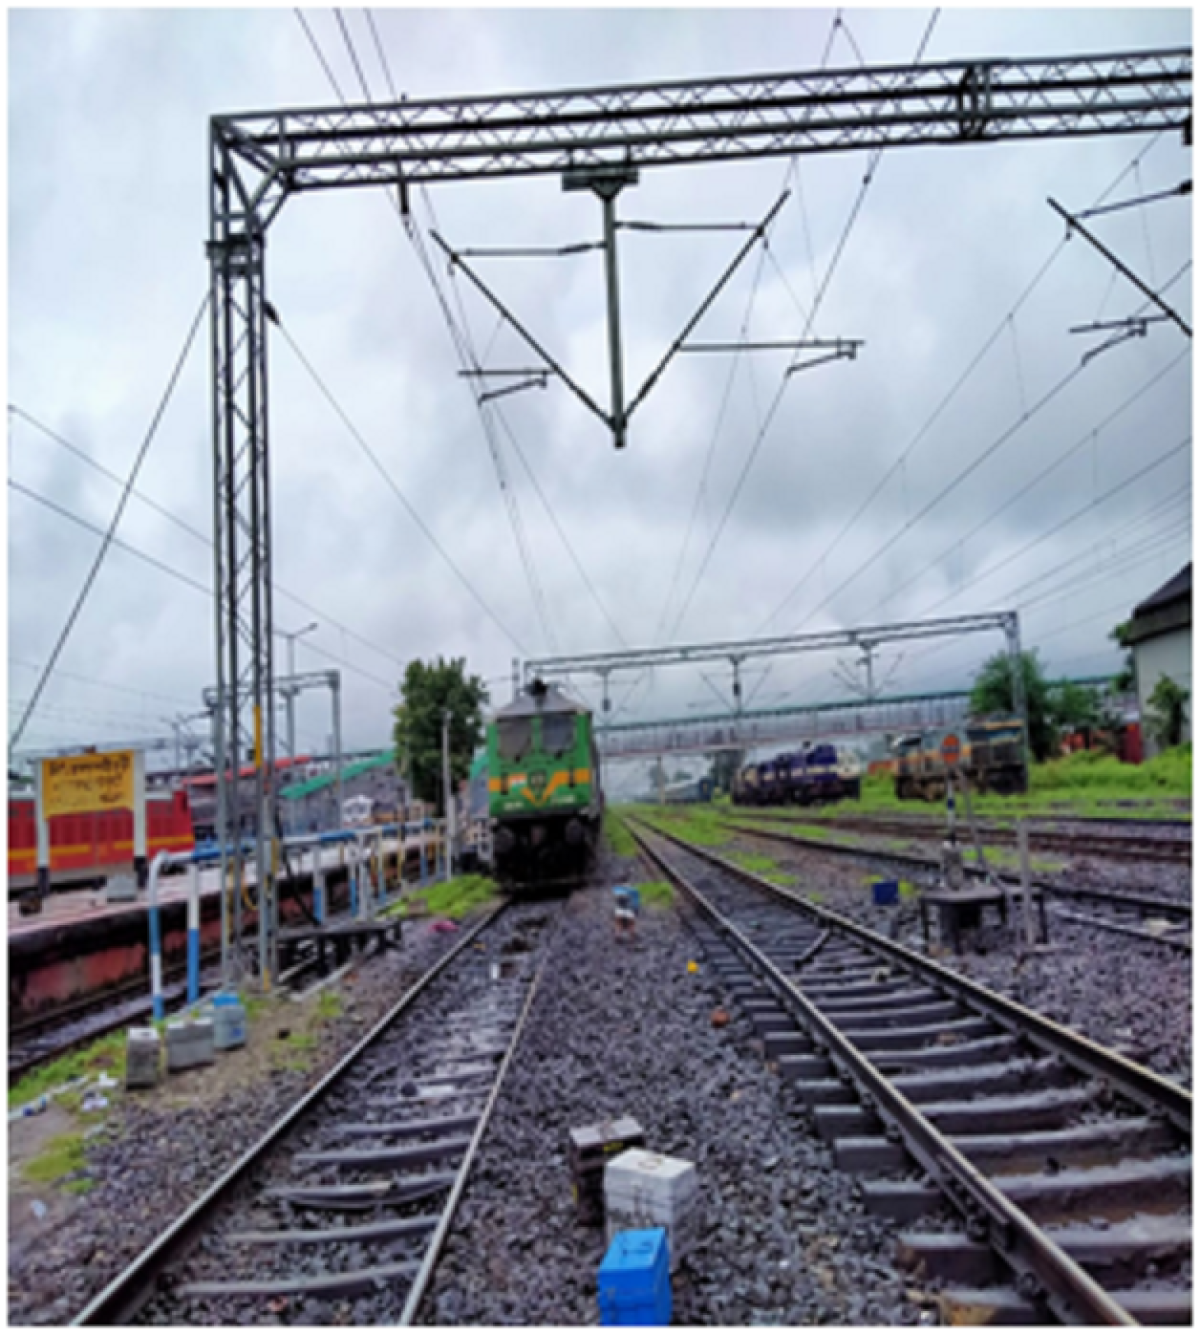 NF Railway electrification: A new dawn and era of speed and savings